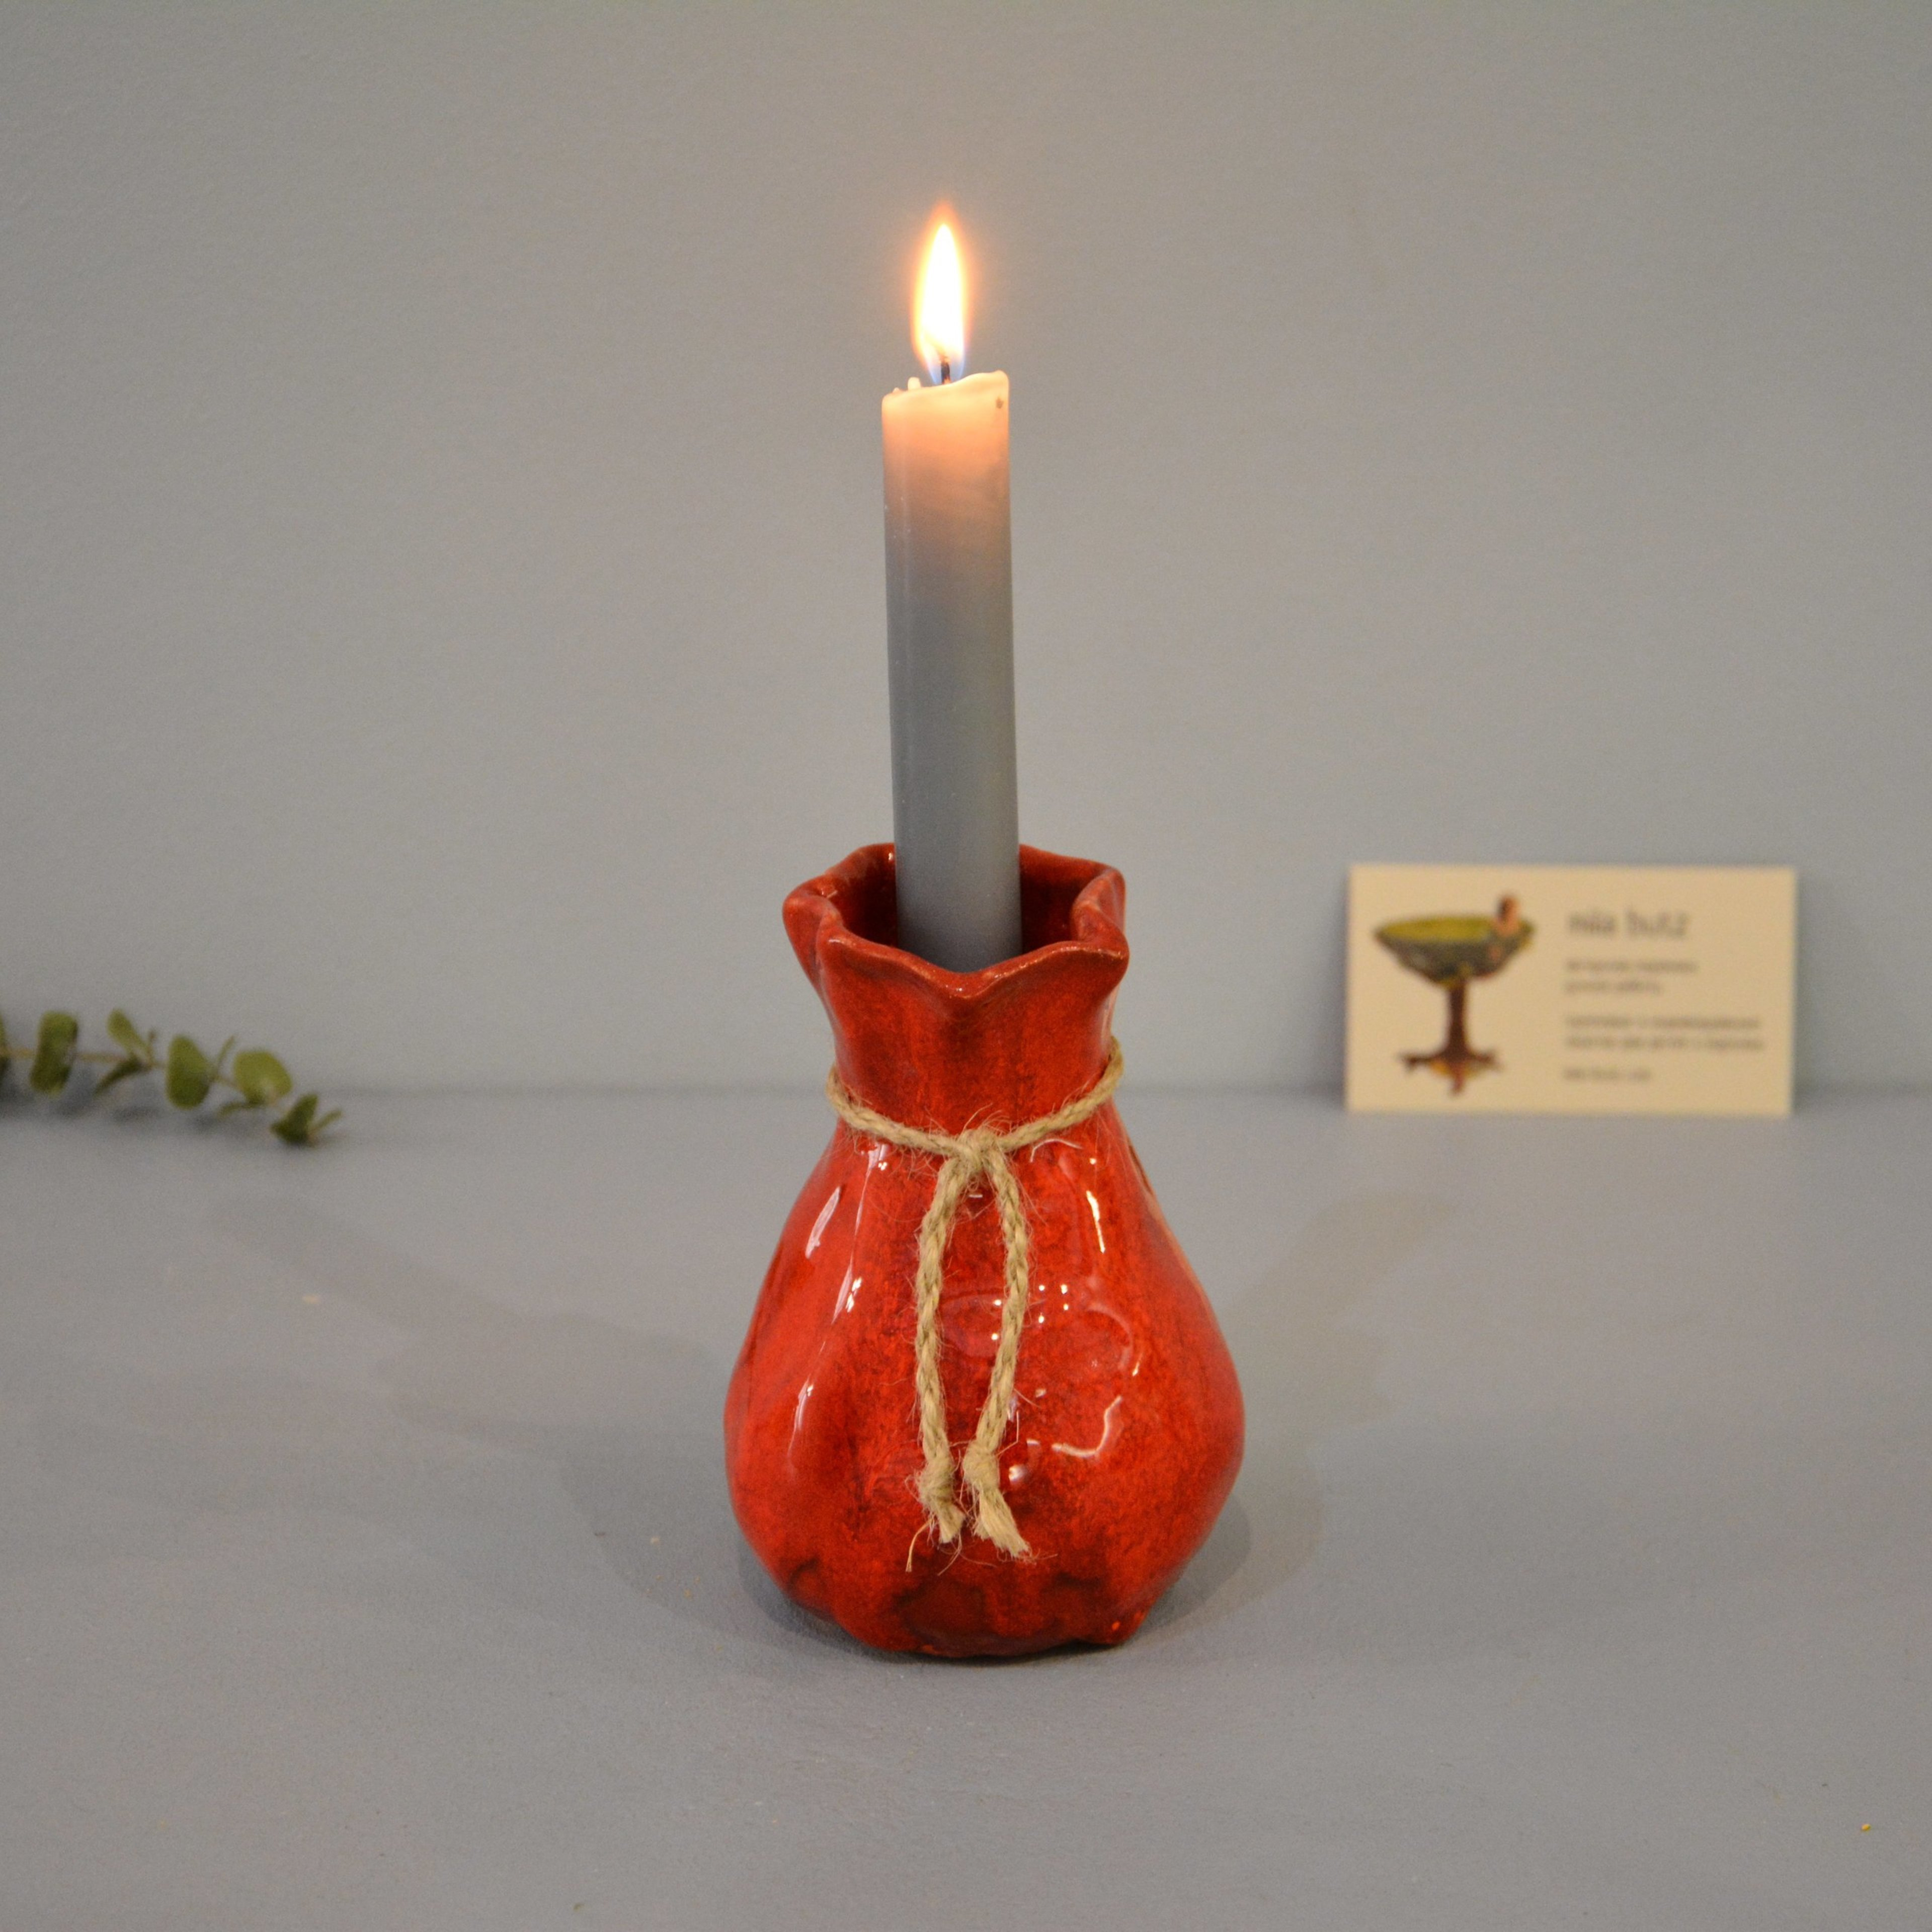 Candle vase «Red Bagful», height - 12 cm, color - red. Photo 1423-3840-3840.